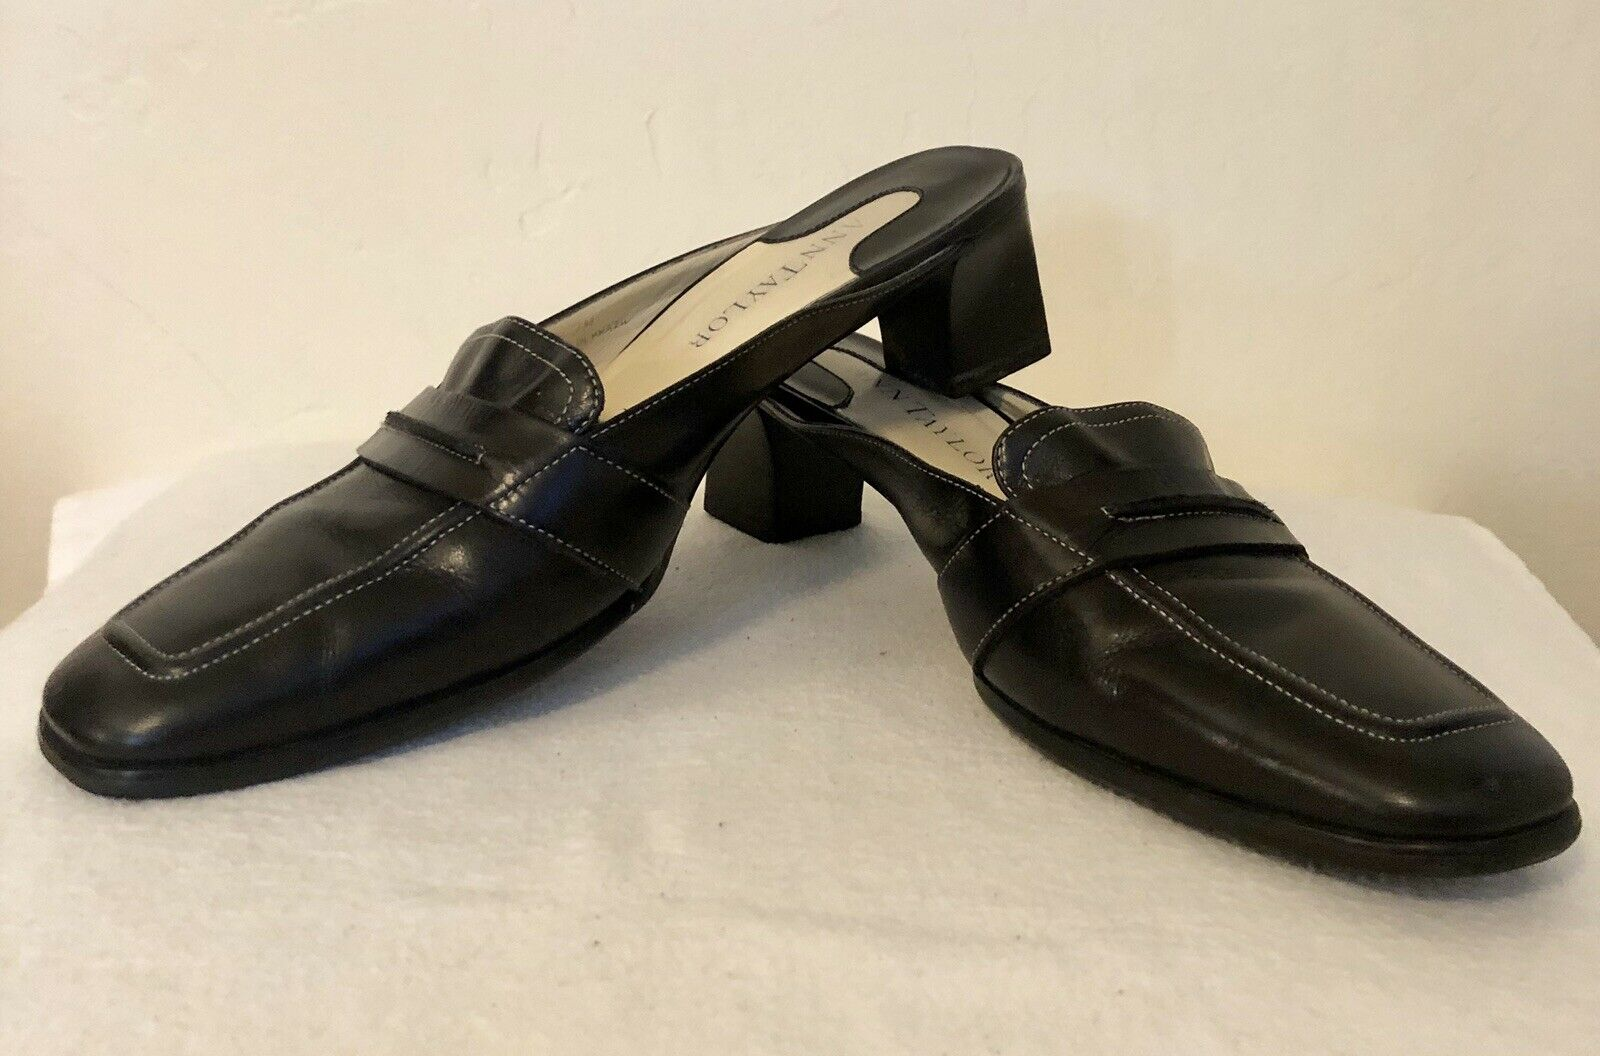 Ann Taylor Women's Loafers Mules Black Leather Slip On Clogs 7 M